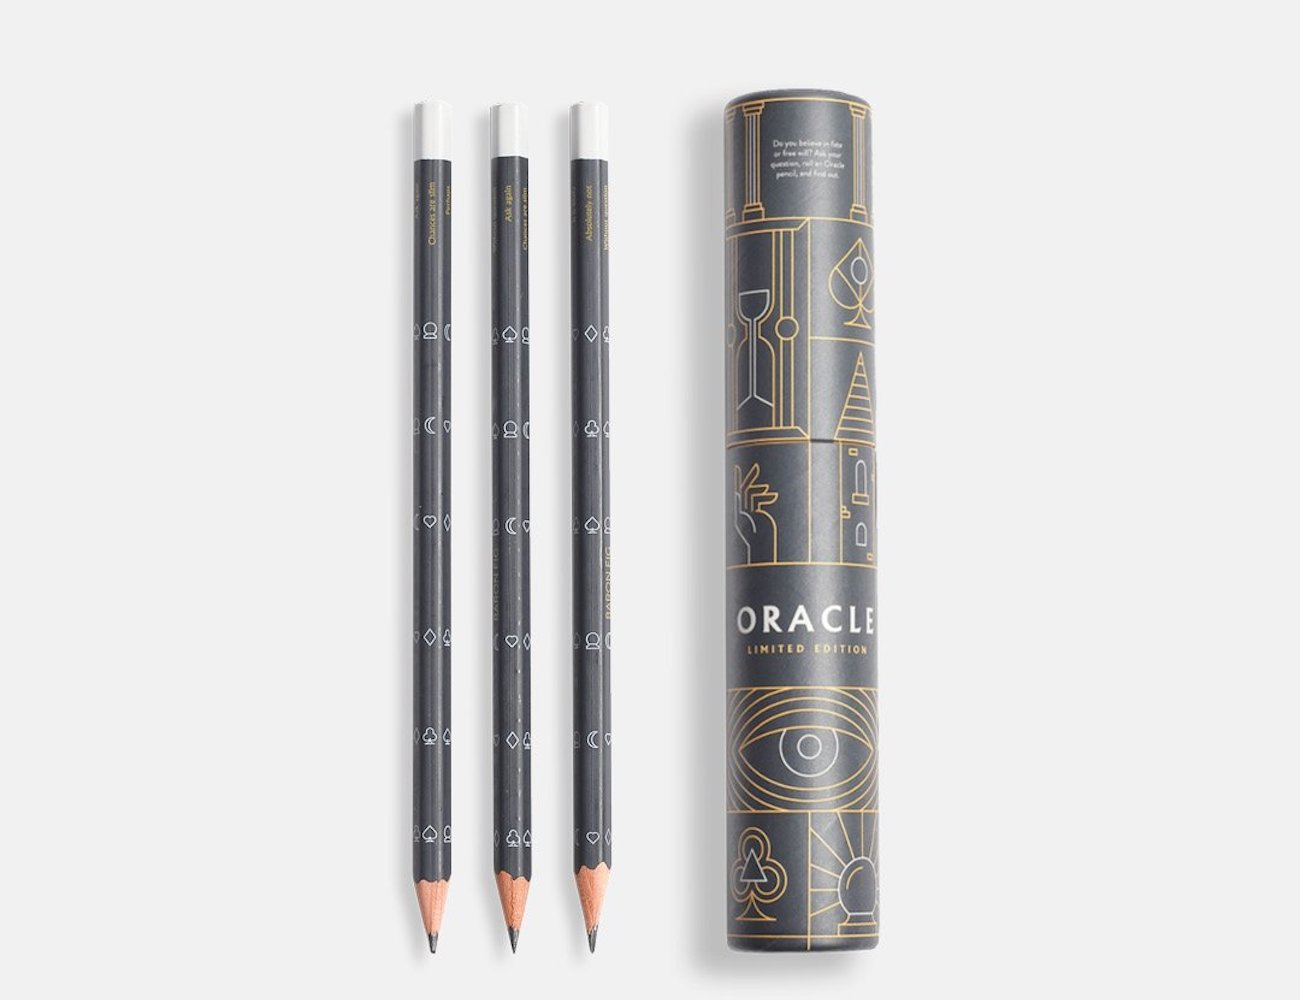 Oracle Limited Edition Pencil Set answers your burning questions